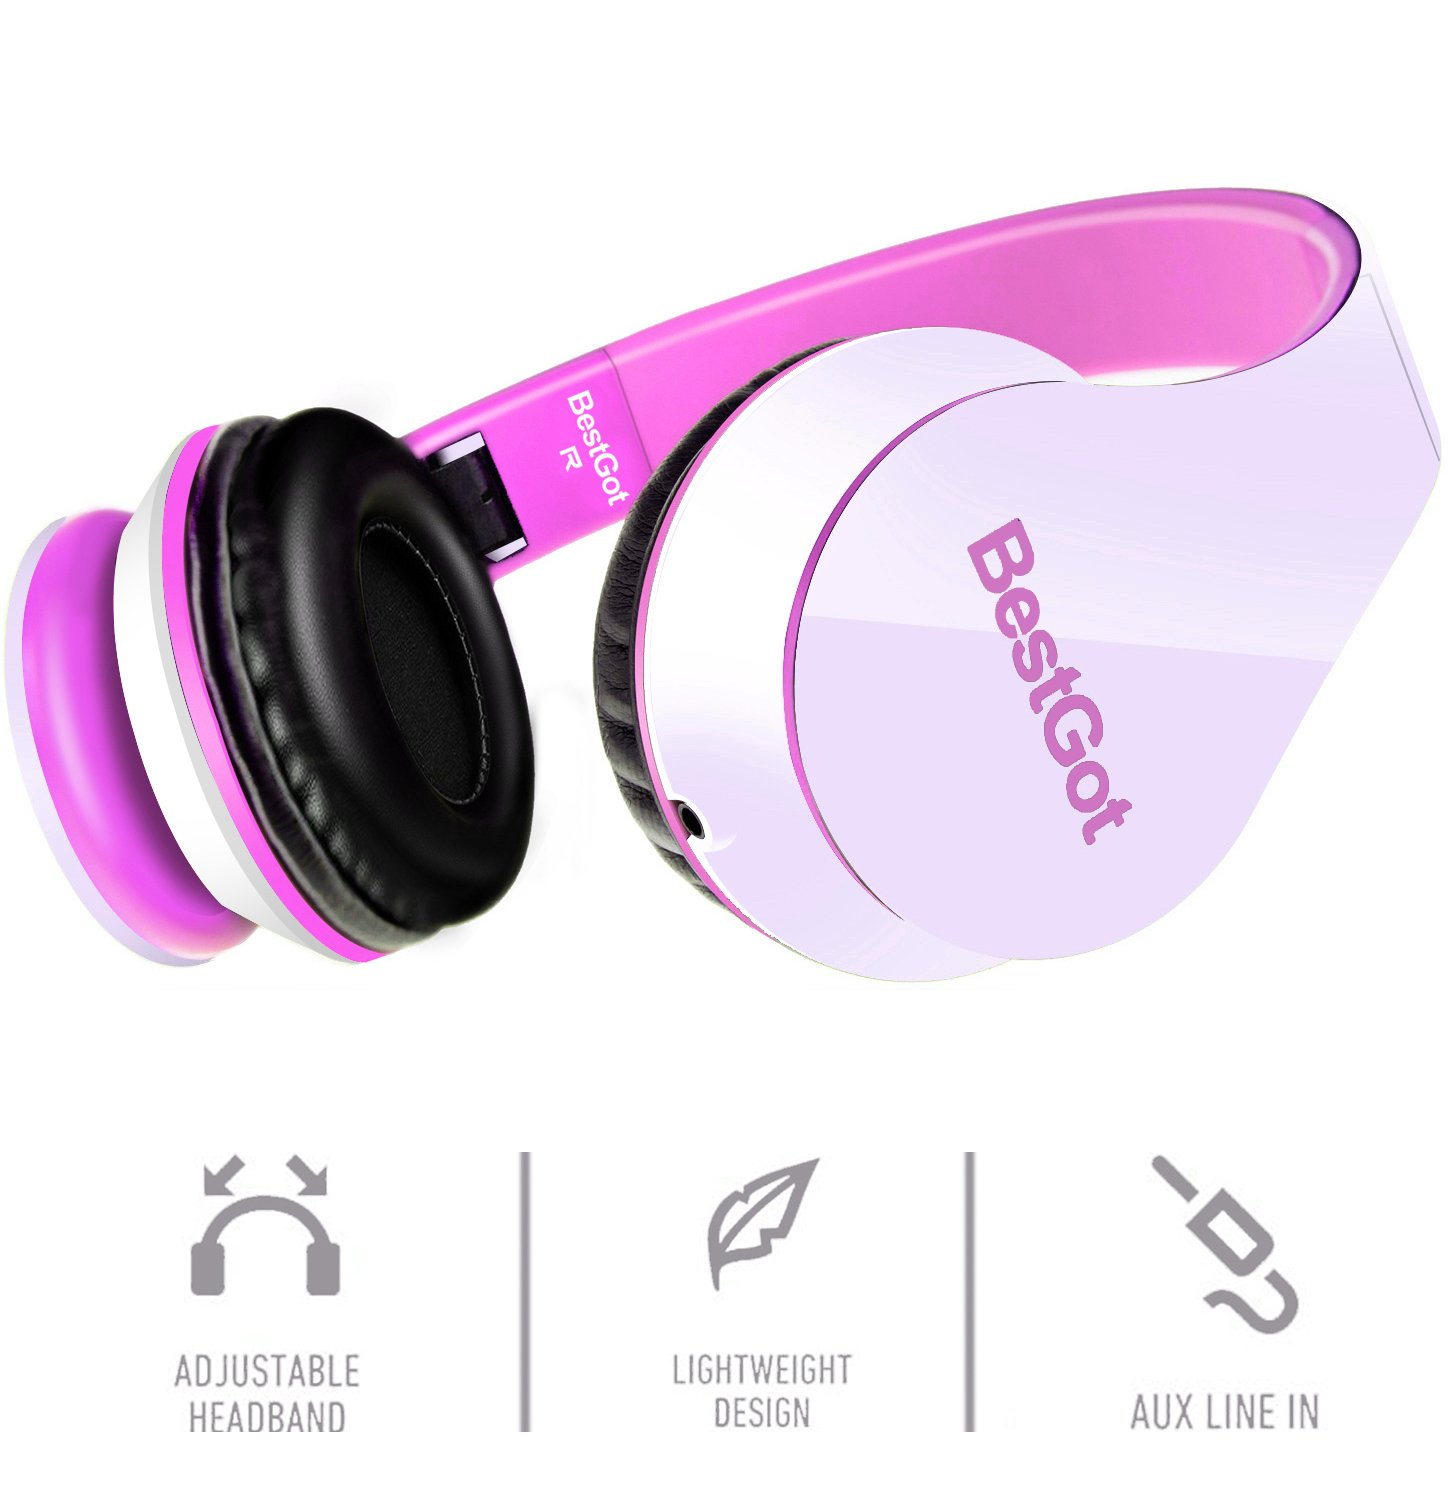 BestGot Kids Headphones Girls Over Ear with Microphone for Kids Adult in-line Volume with Transport Waterproof Bag Foldable Headphone with 3.5mm Plug Removable Cord (White/Pink) by Bestgot (Image #3)